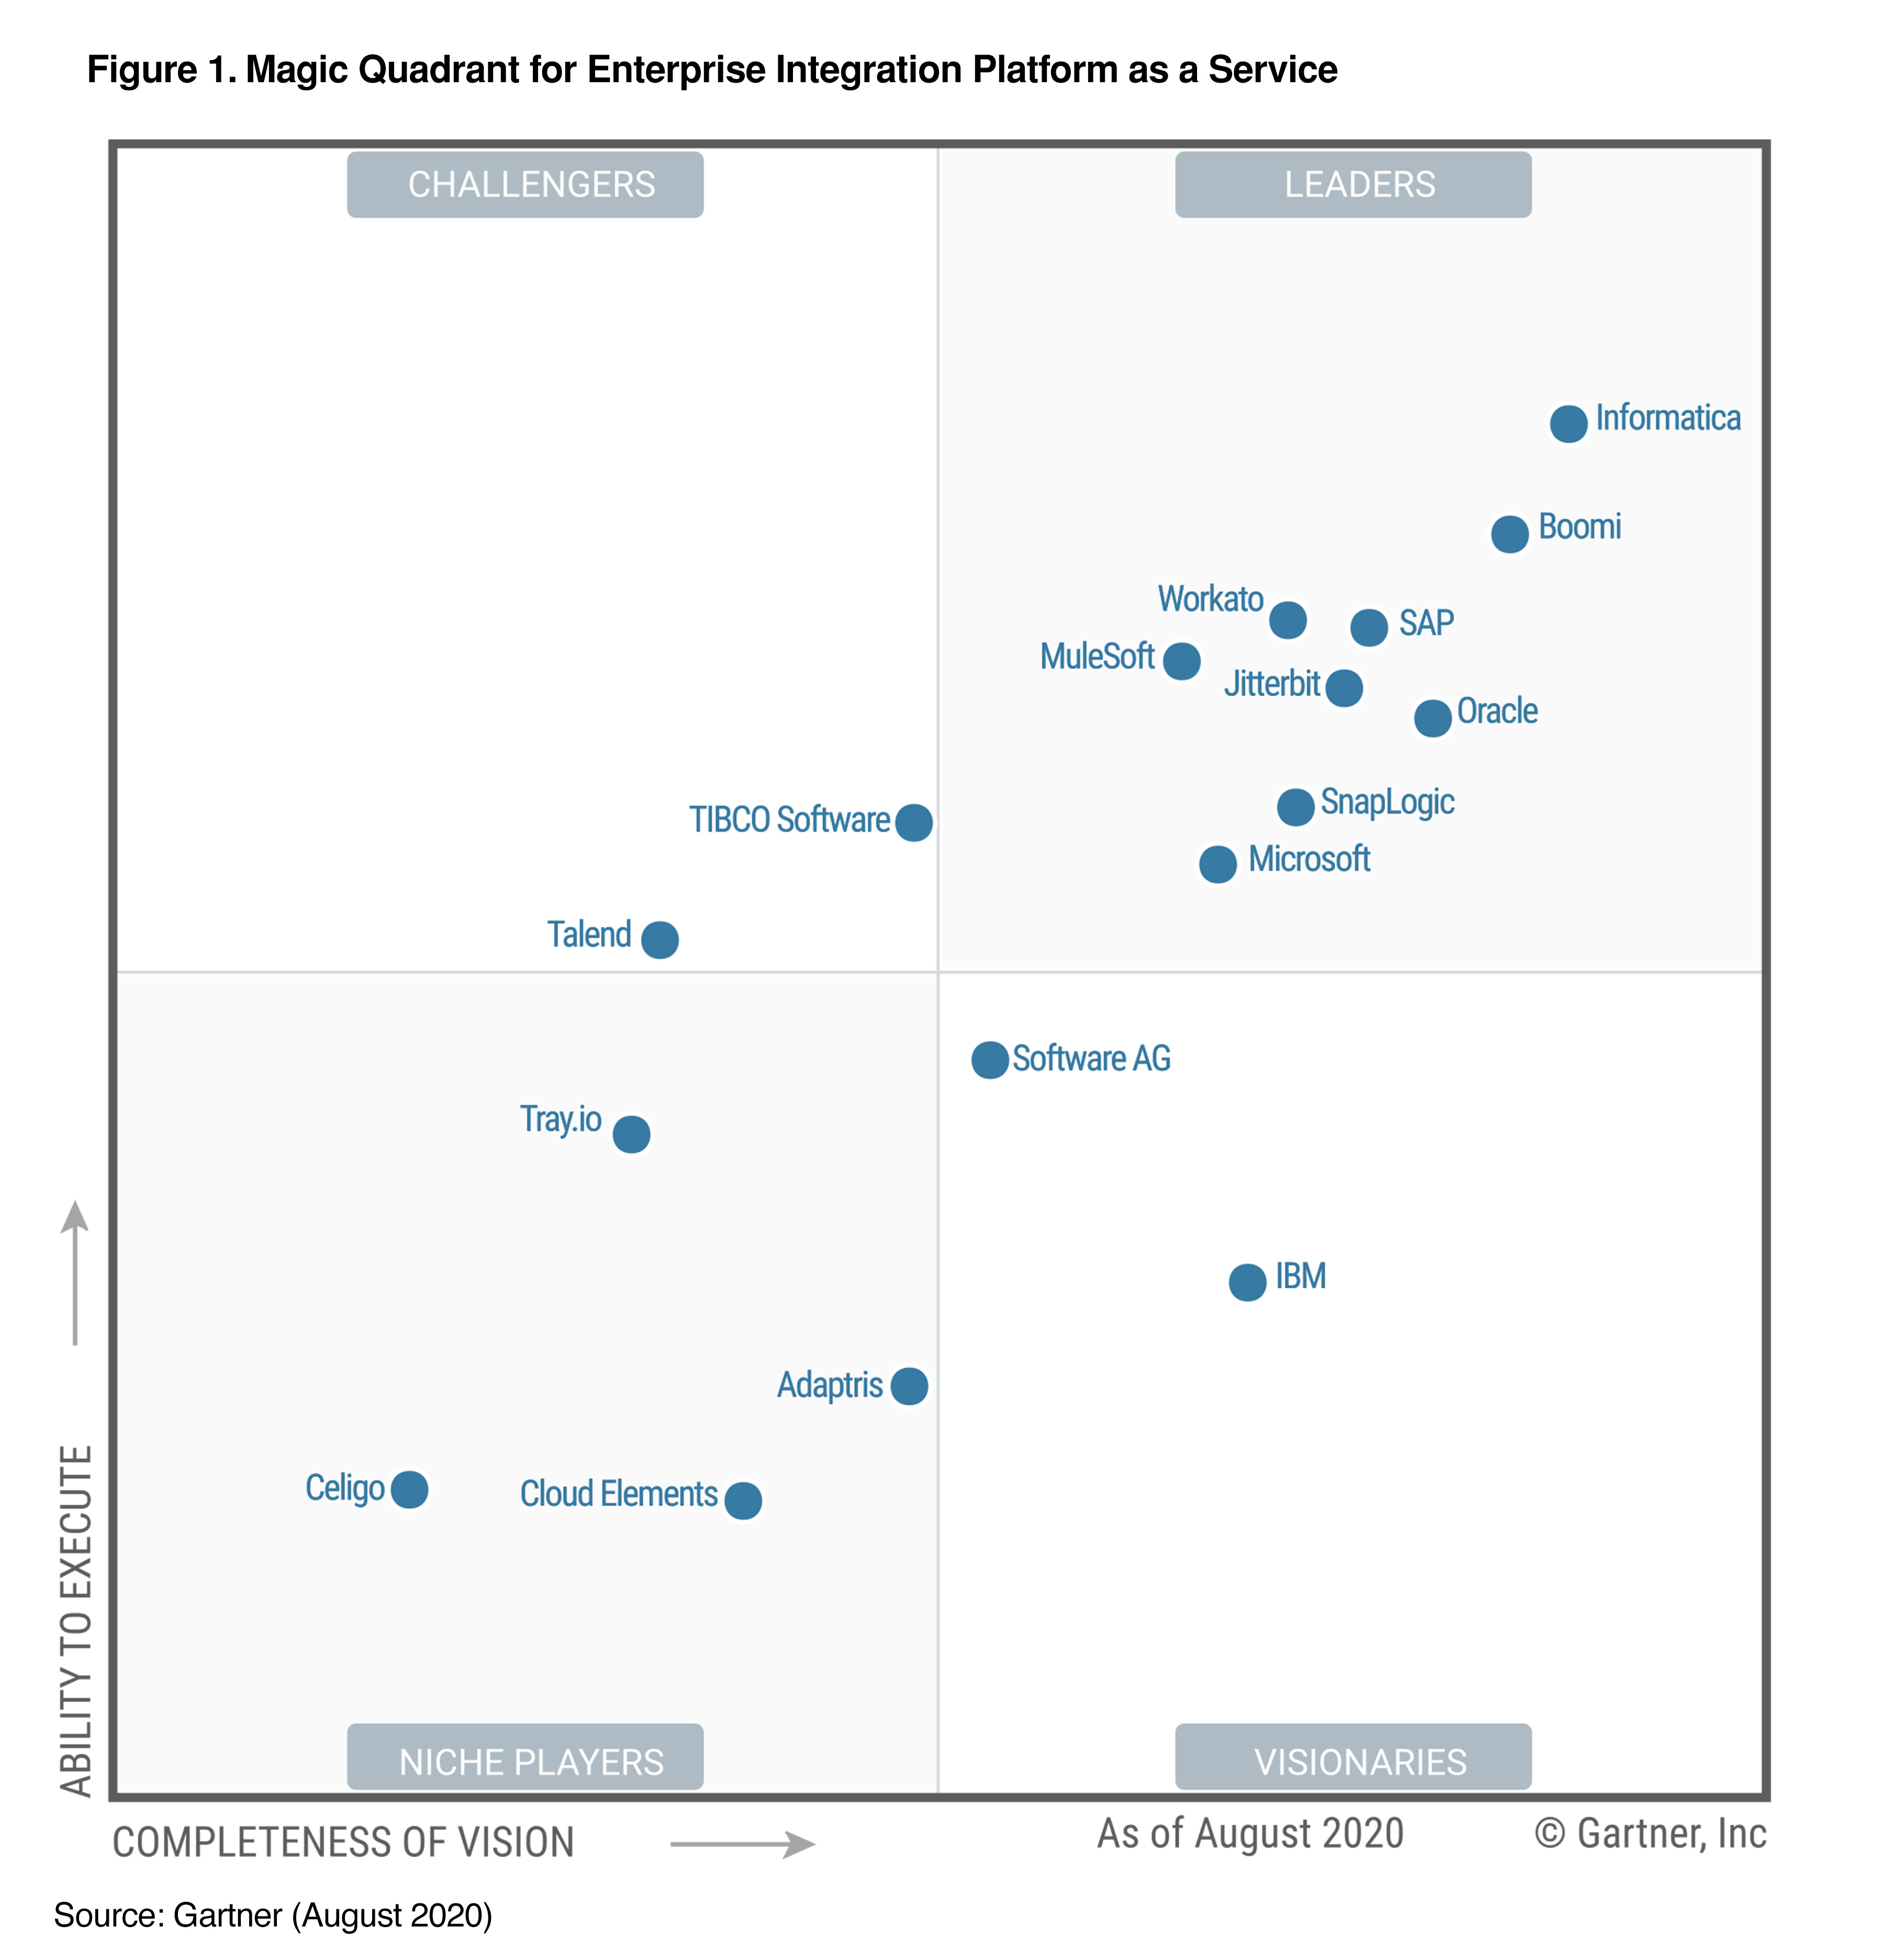 ipaas-magic-quadrant-2020